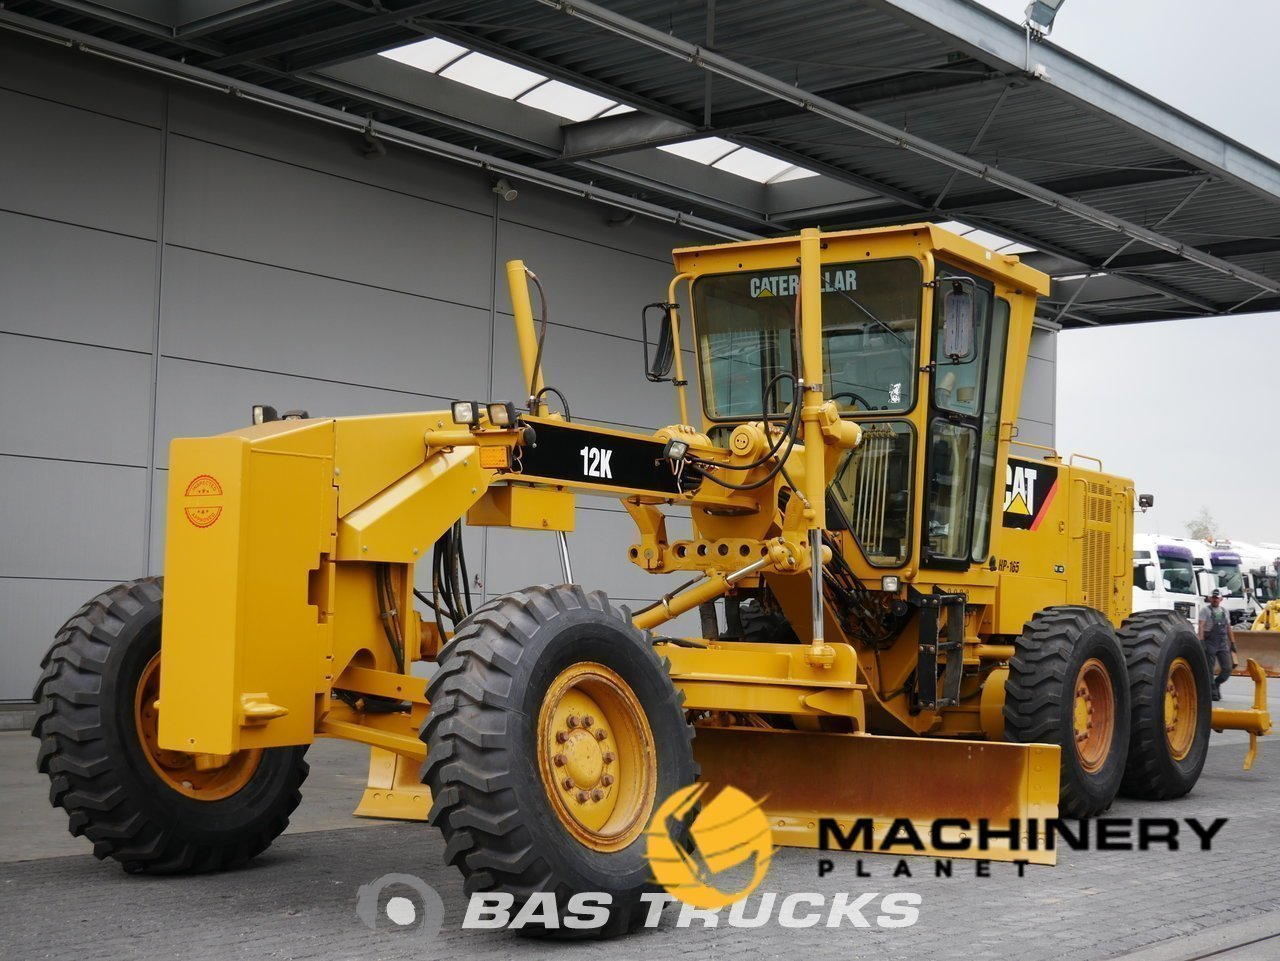 Used-Construction-equipment-Caterpillar-12K-6X4-2011_138120_1-1554199562323_5ca3340a4ec14-1.jpg